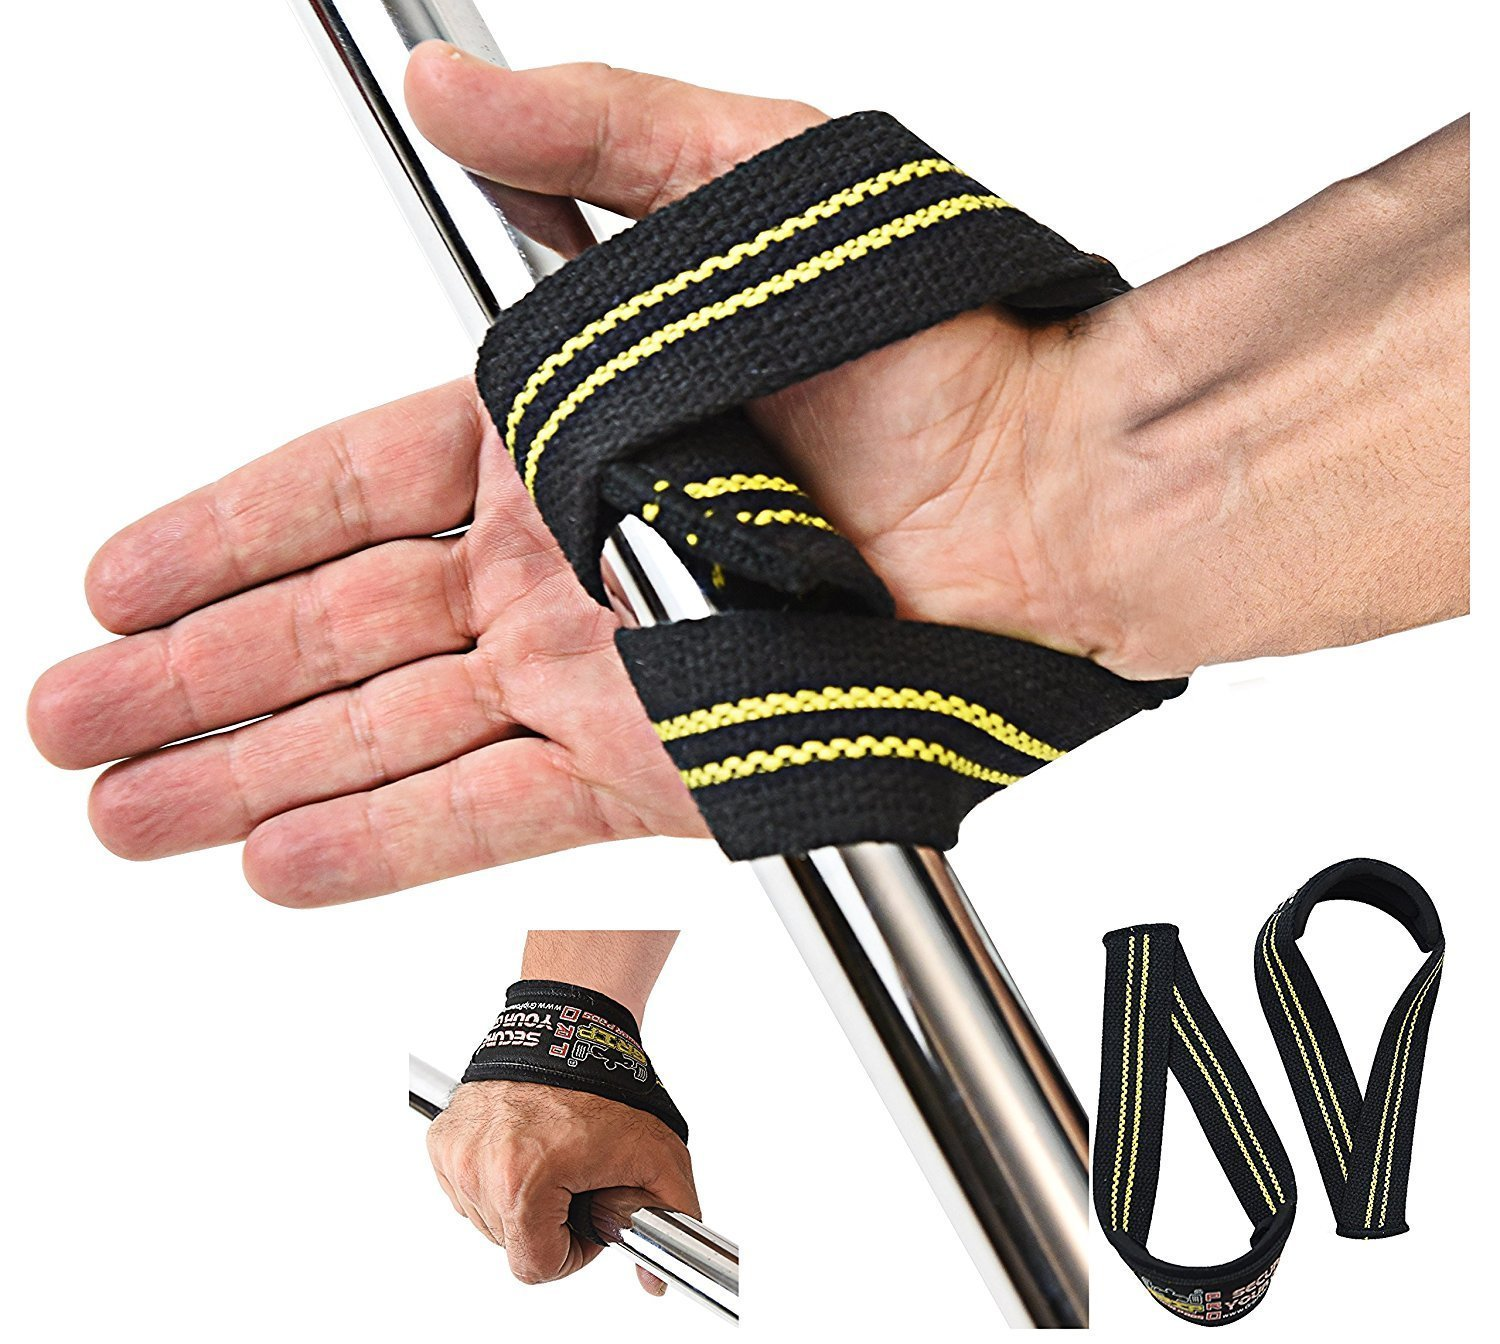 Triangle Quick Lifting Wrist Straps Weightlifting Heavy Duty Neoprene Padded 1 Pair Cotton Wraps Grip Support Grip Pad Pads (Black & Yellow)